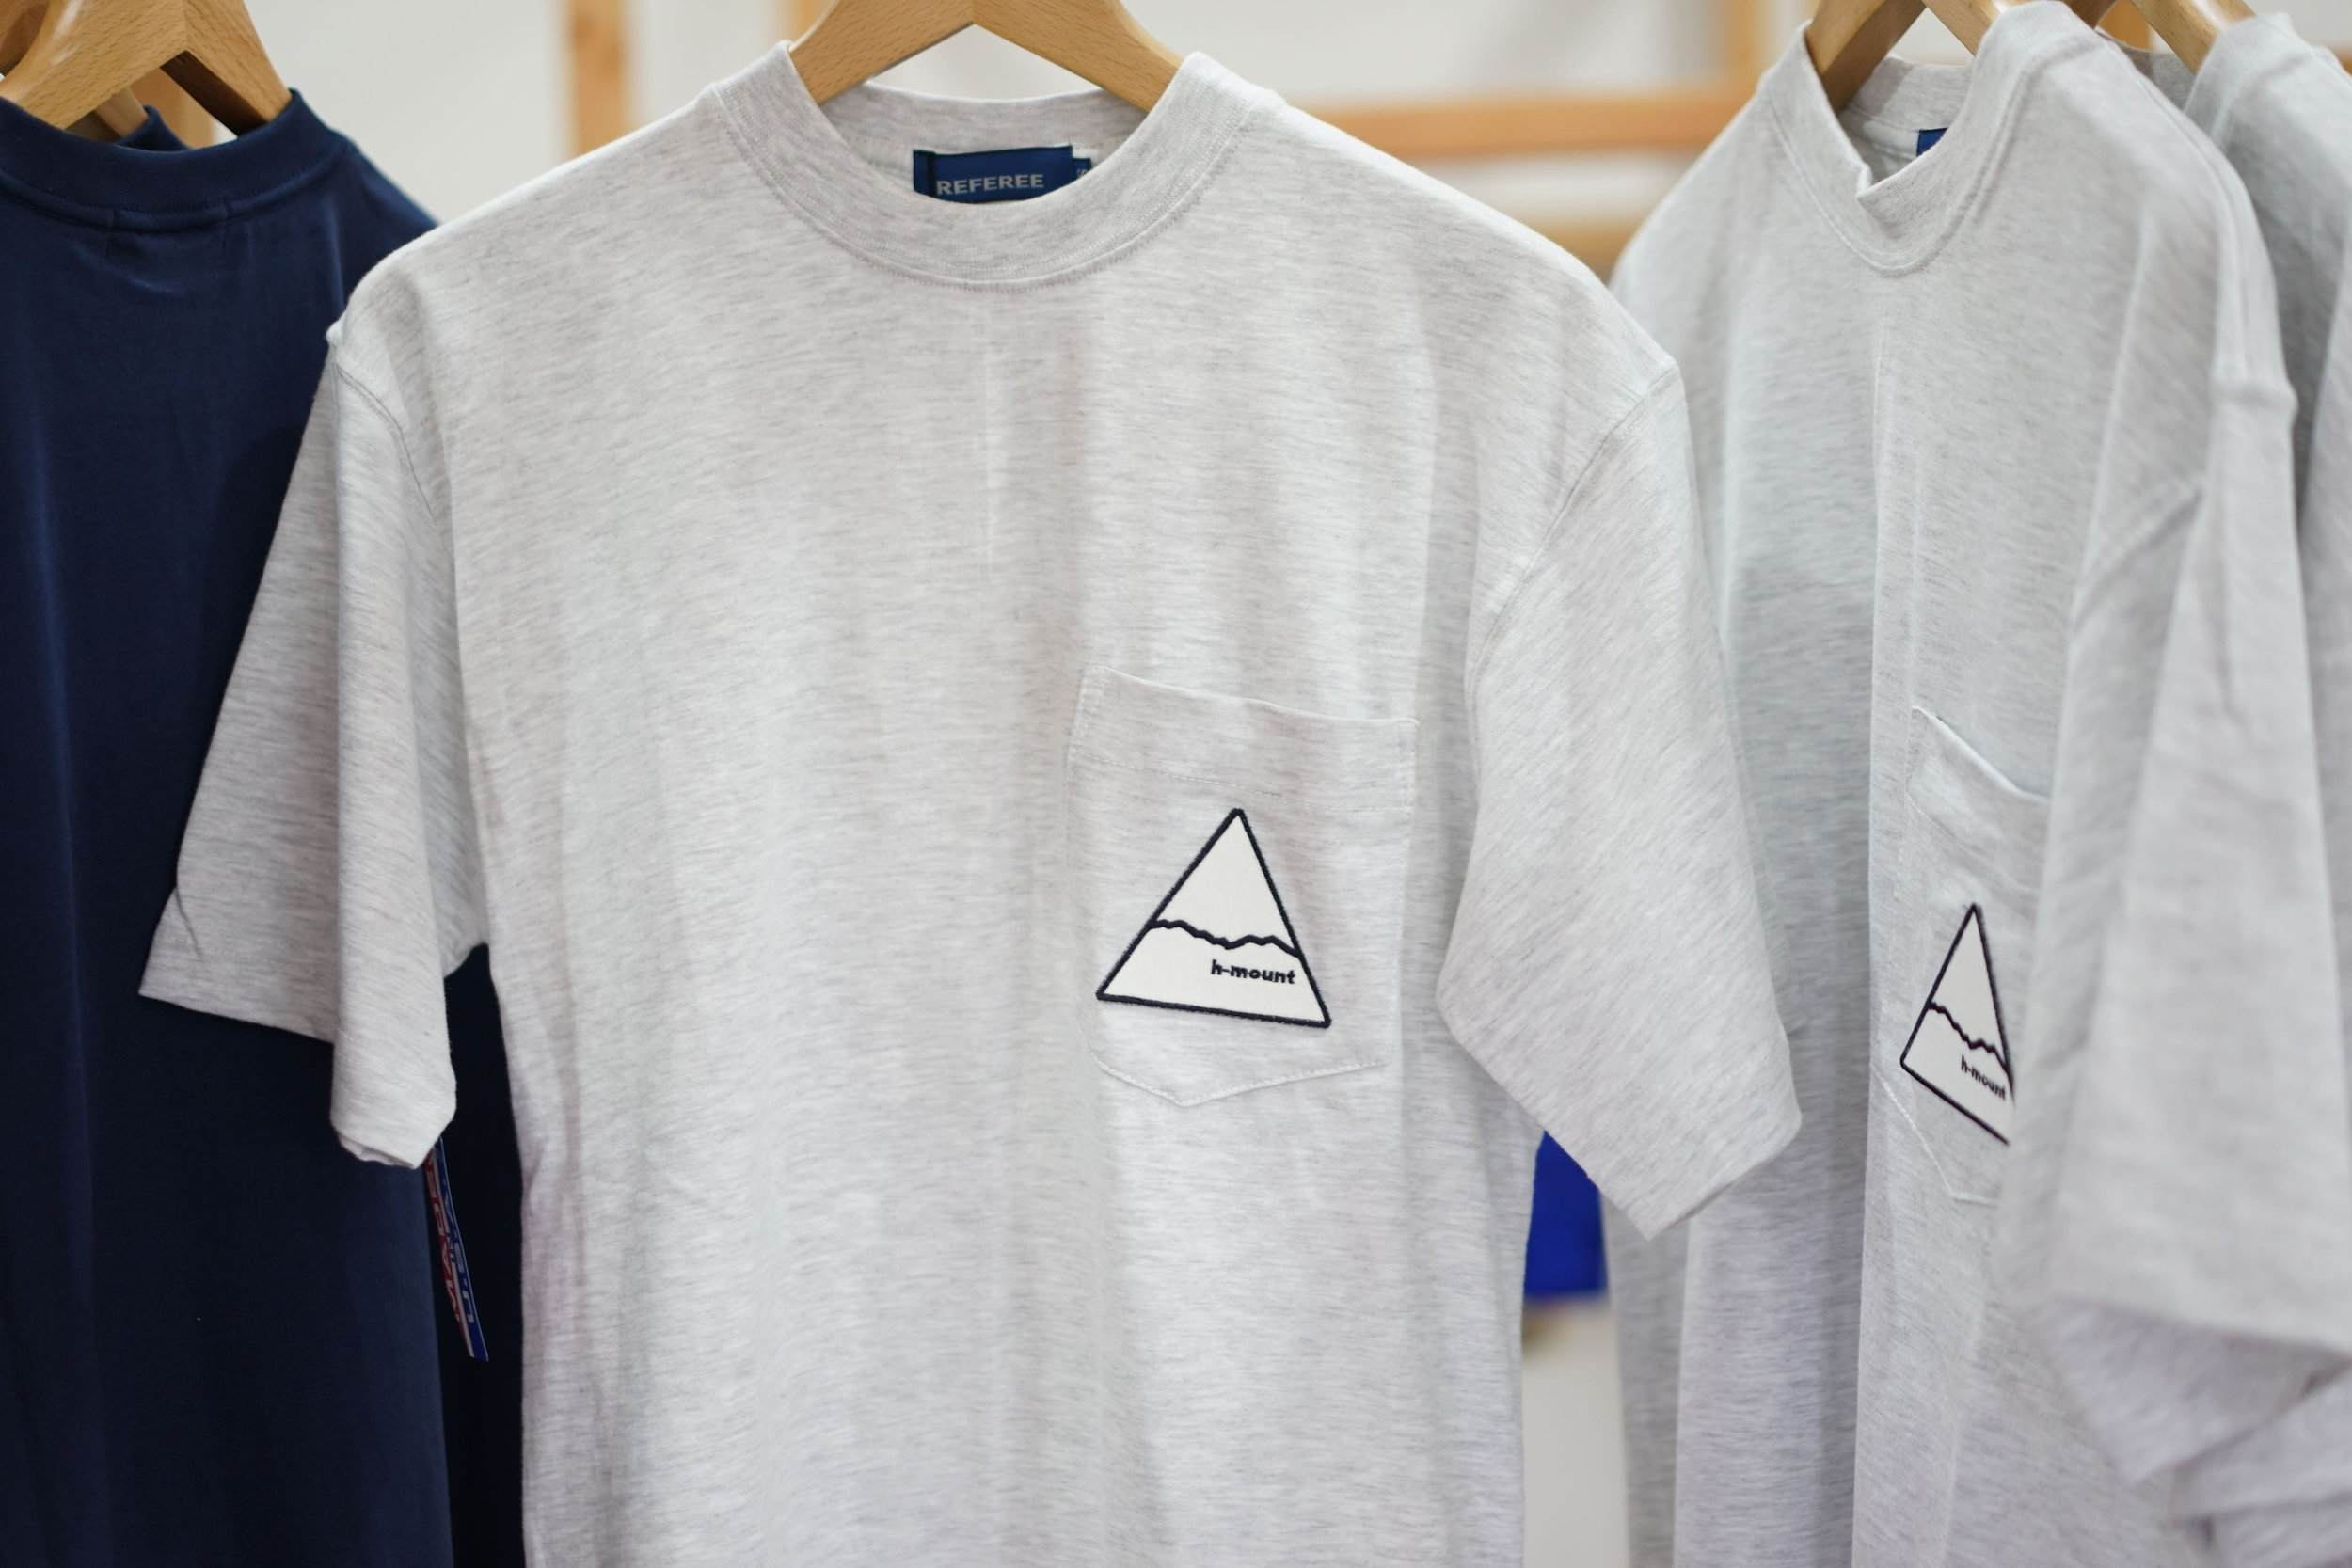 COLOR:GREY,NAVY  SIZE:S,M,L  FABRIC:COTTON  ¥7,500+TAX